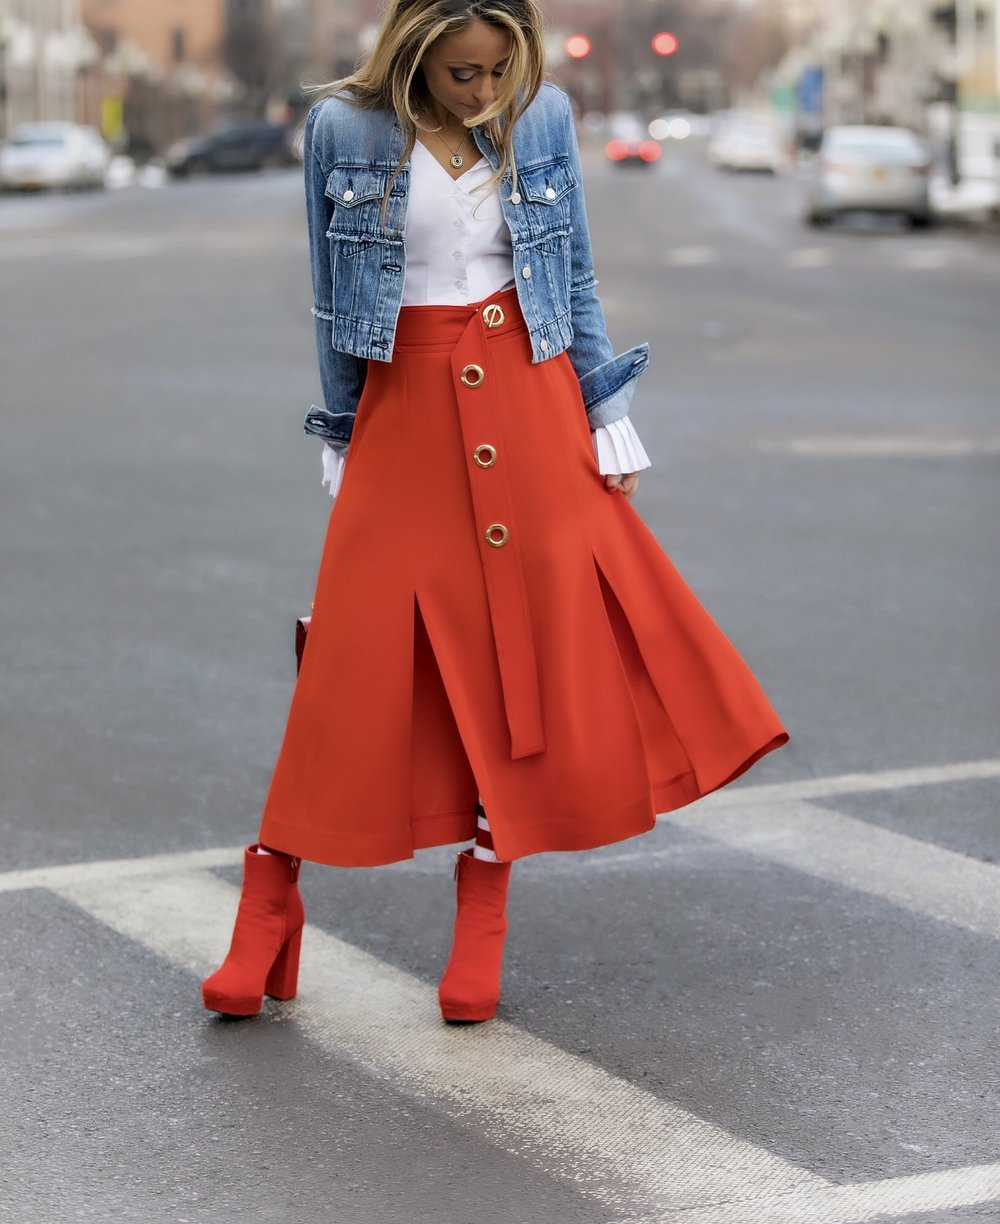 Lauren Recchia fashion week streetstyle in cropped denim and red midi skirt by Derek Lam